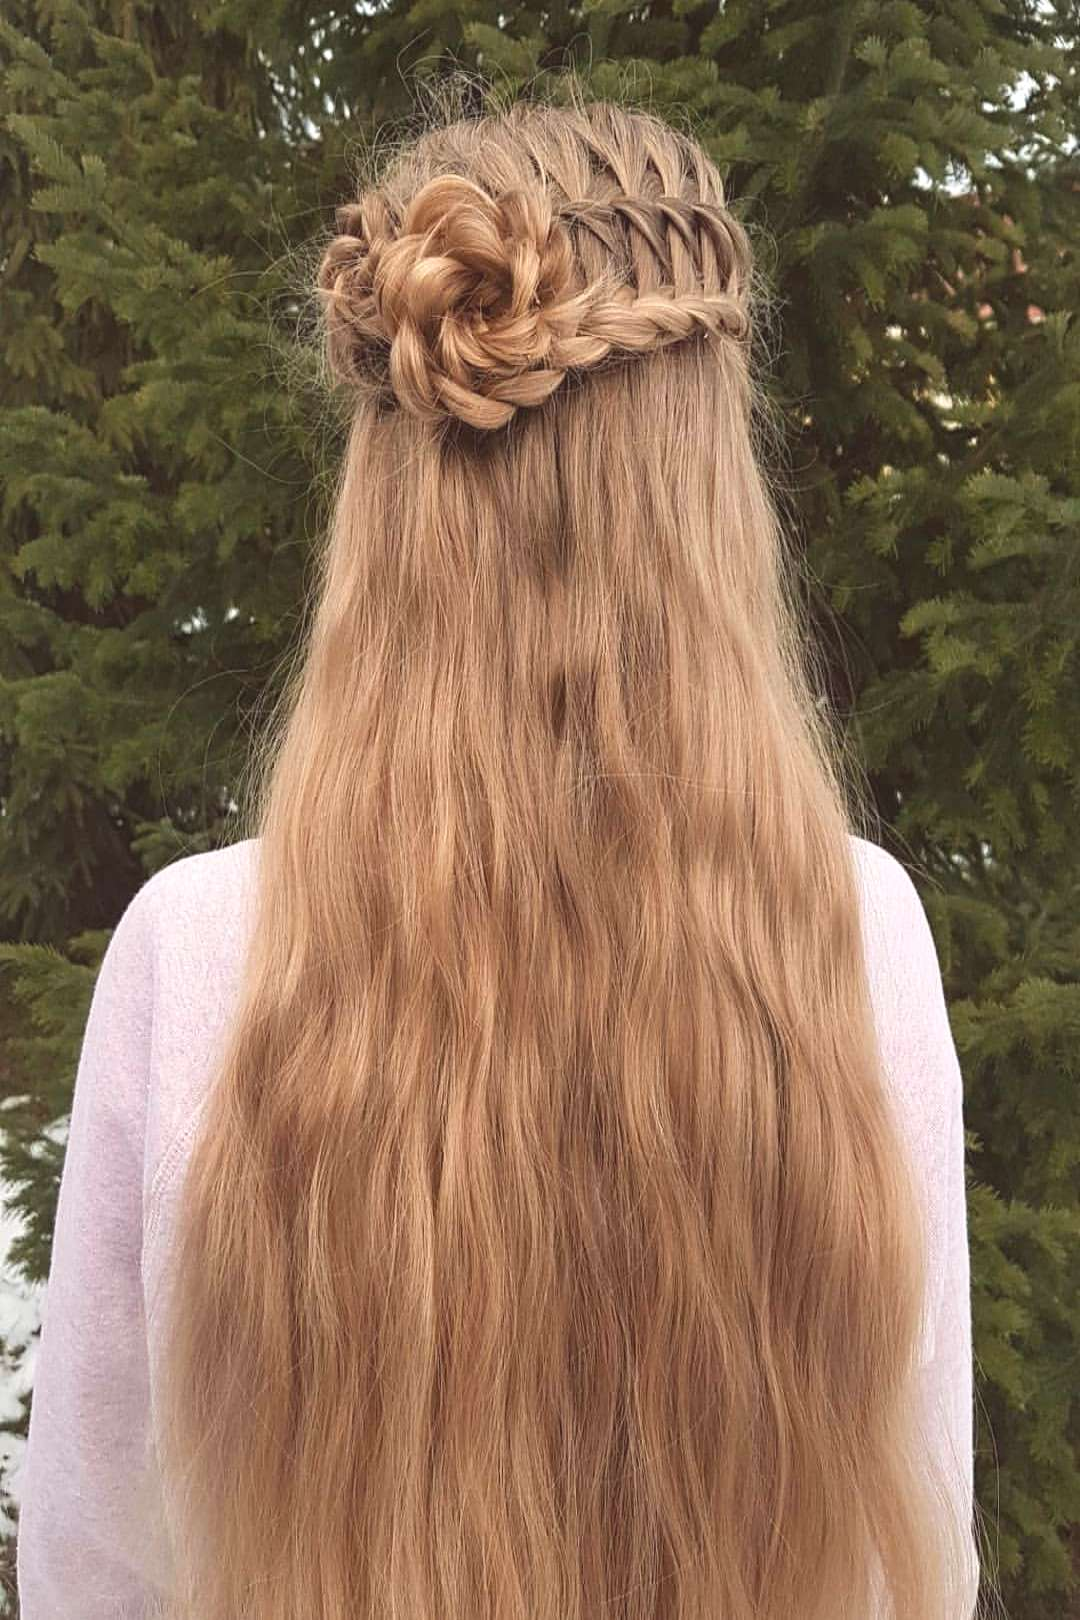 Braids by Suvi on January 01 2020 one or more people and outdoor